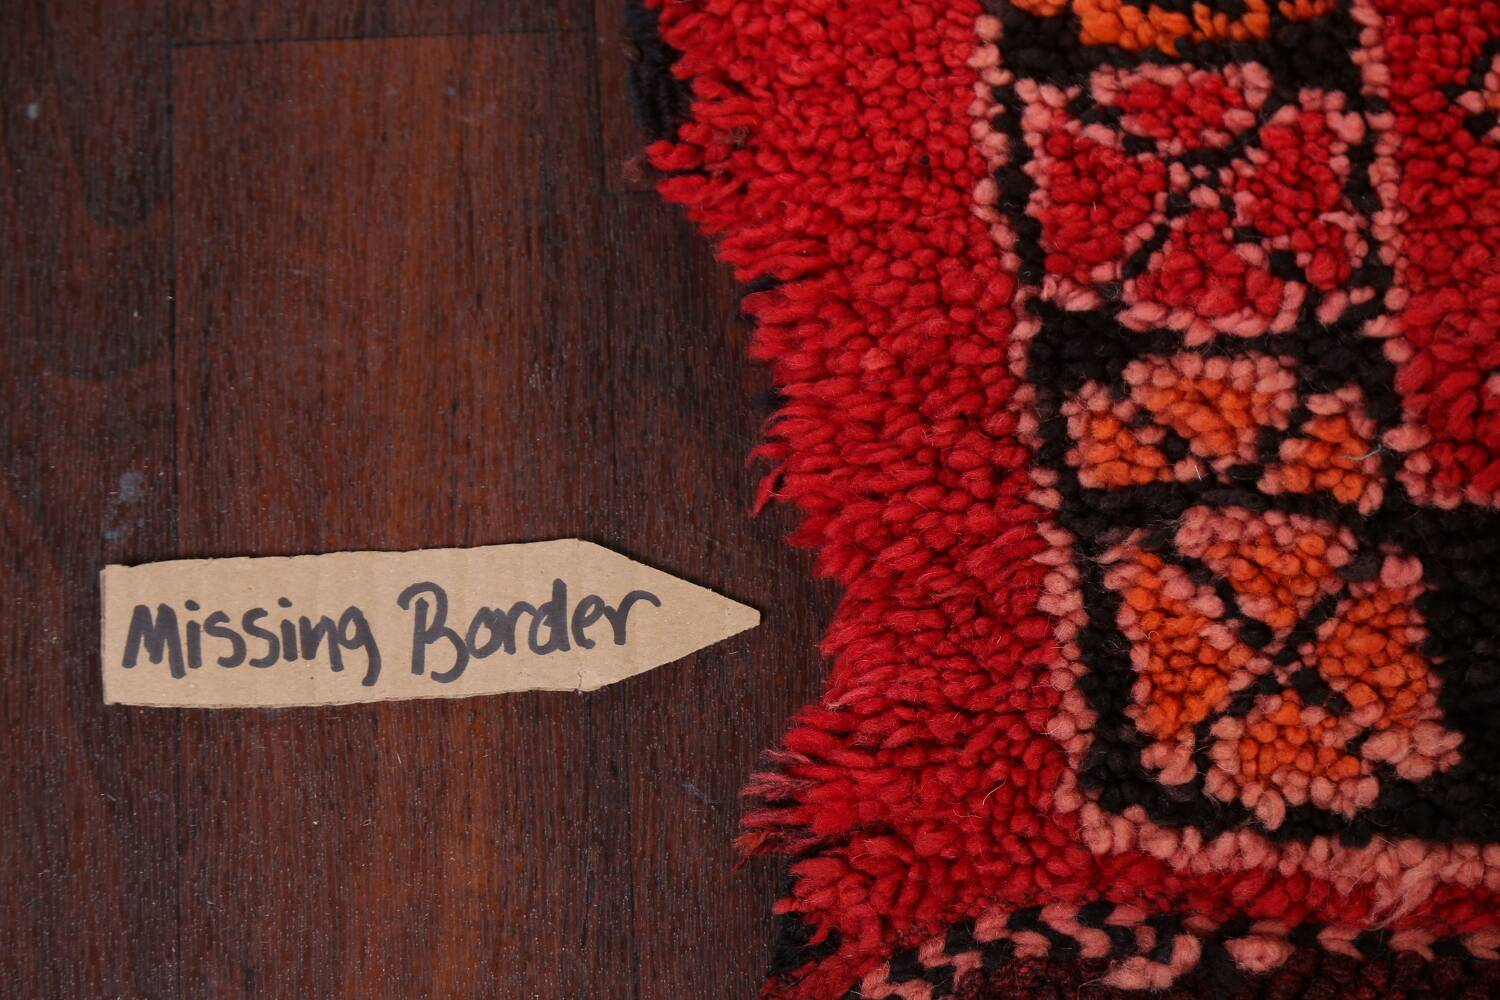 Red Moroccan Berber Area Rug 6x11 image 13